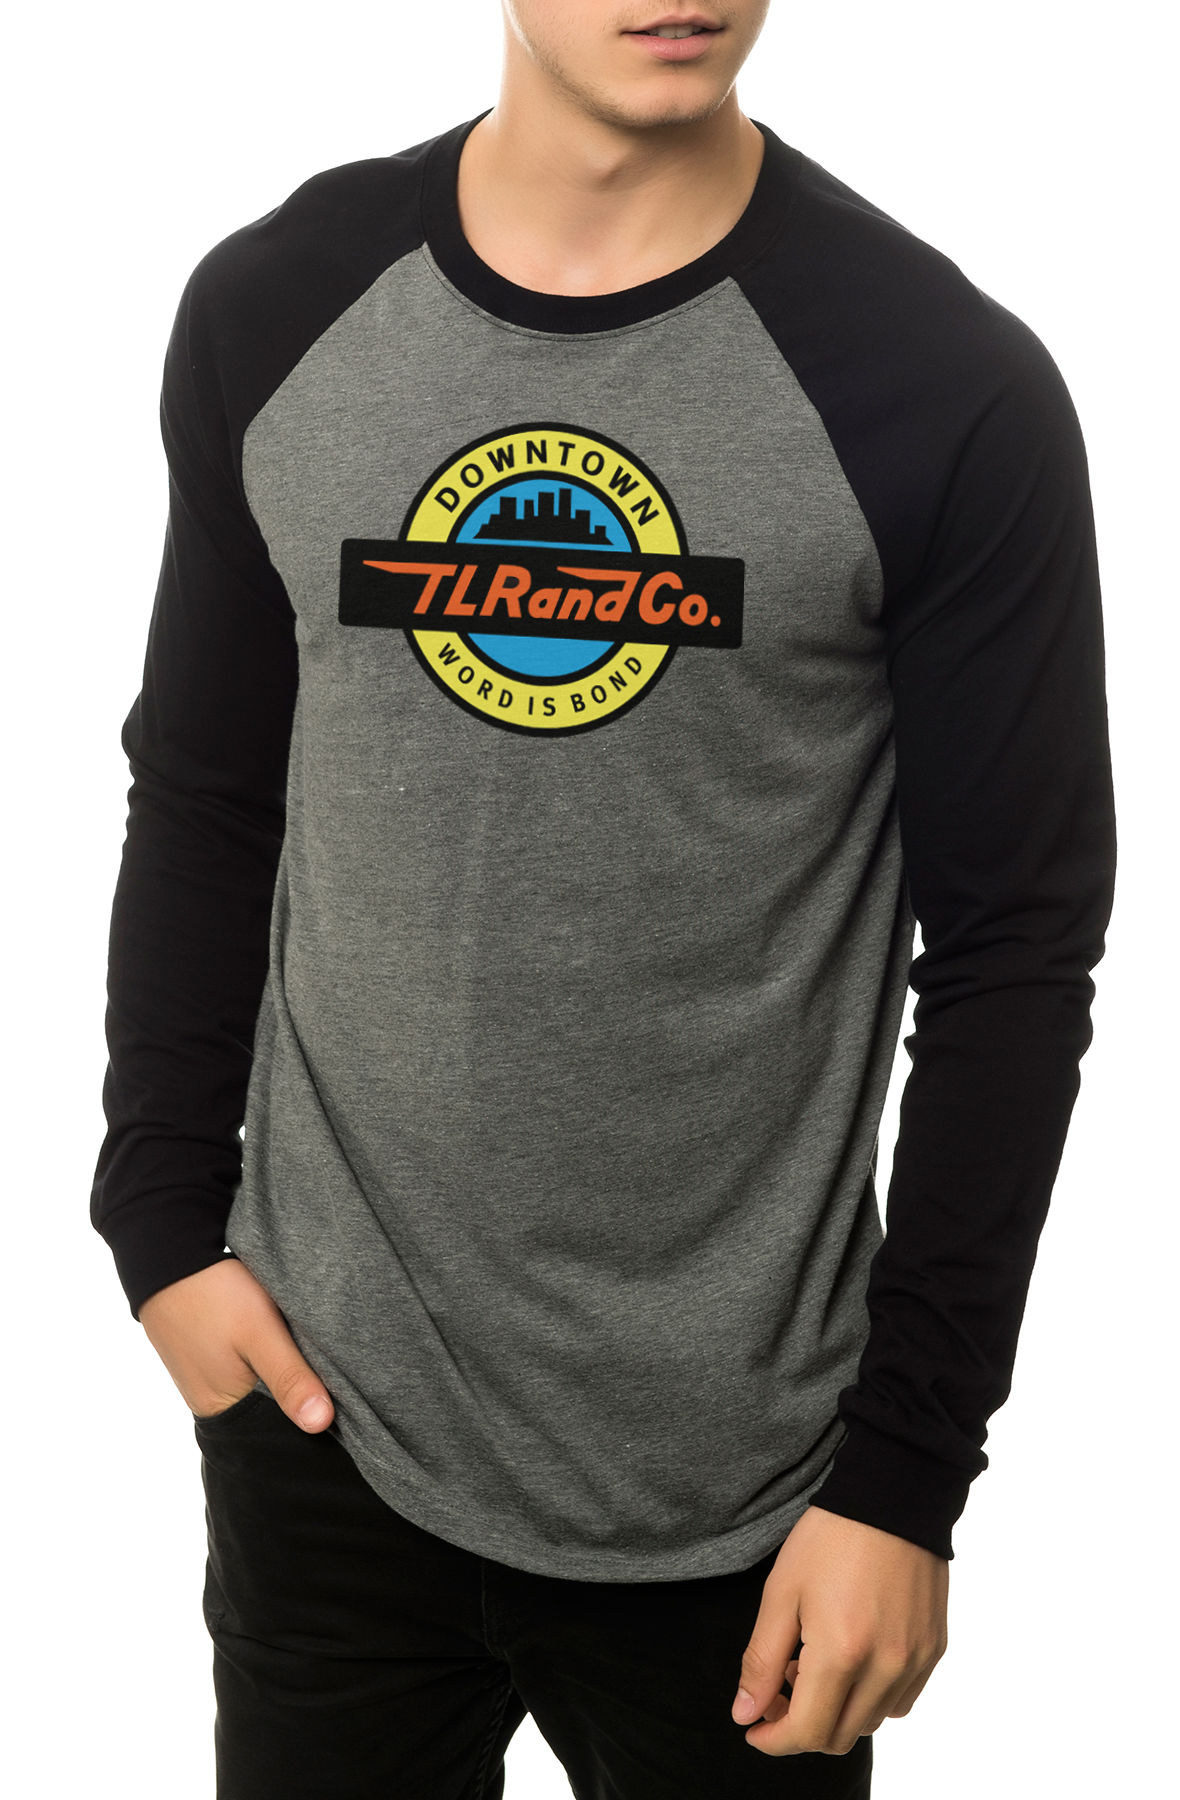 Image of The Train Logo Raglan in Heather Grey and Black (Black Sleeves)